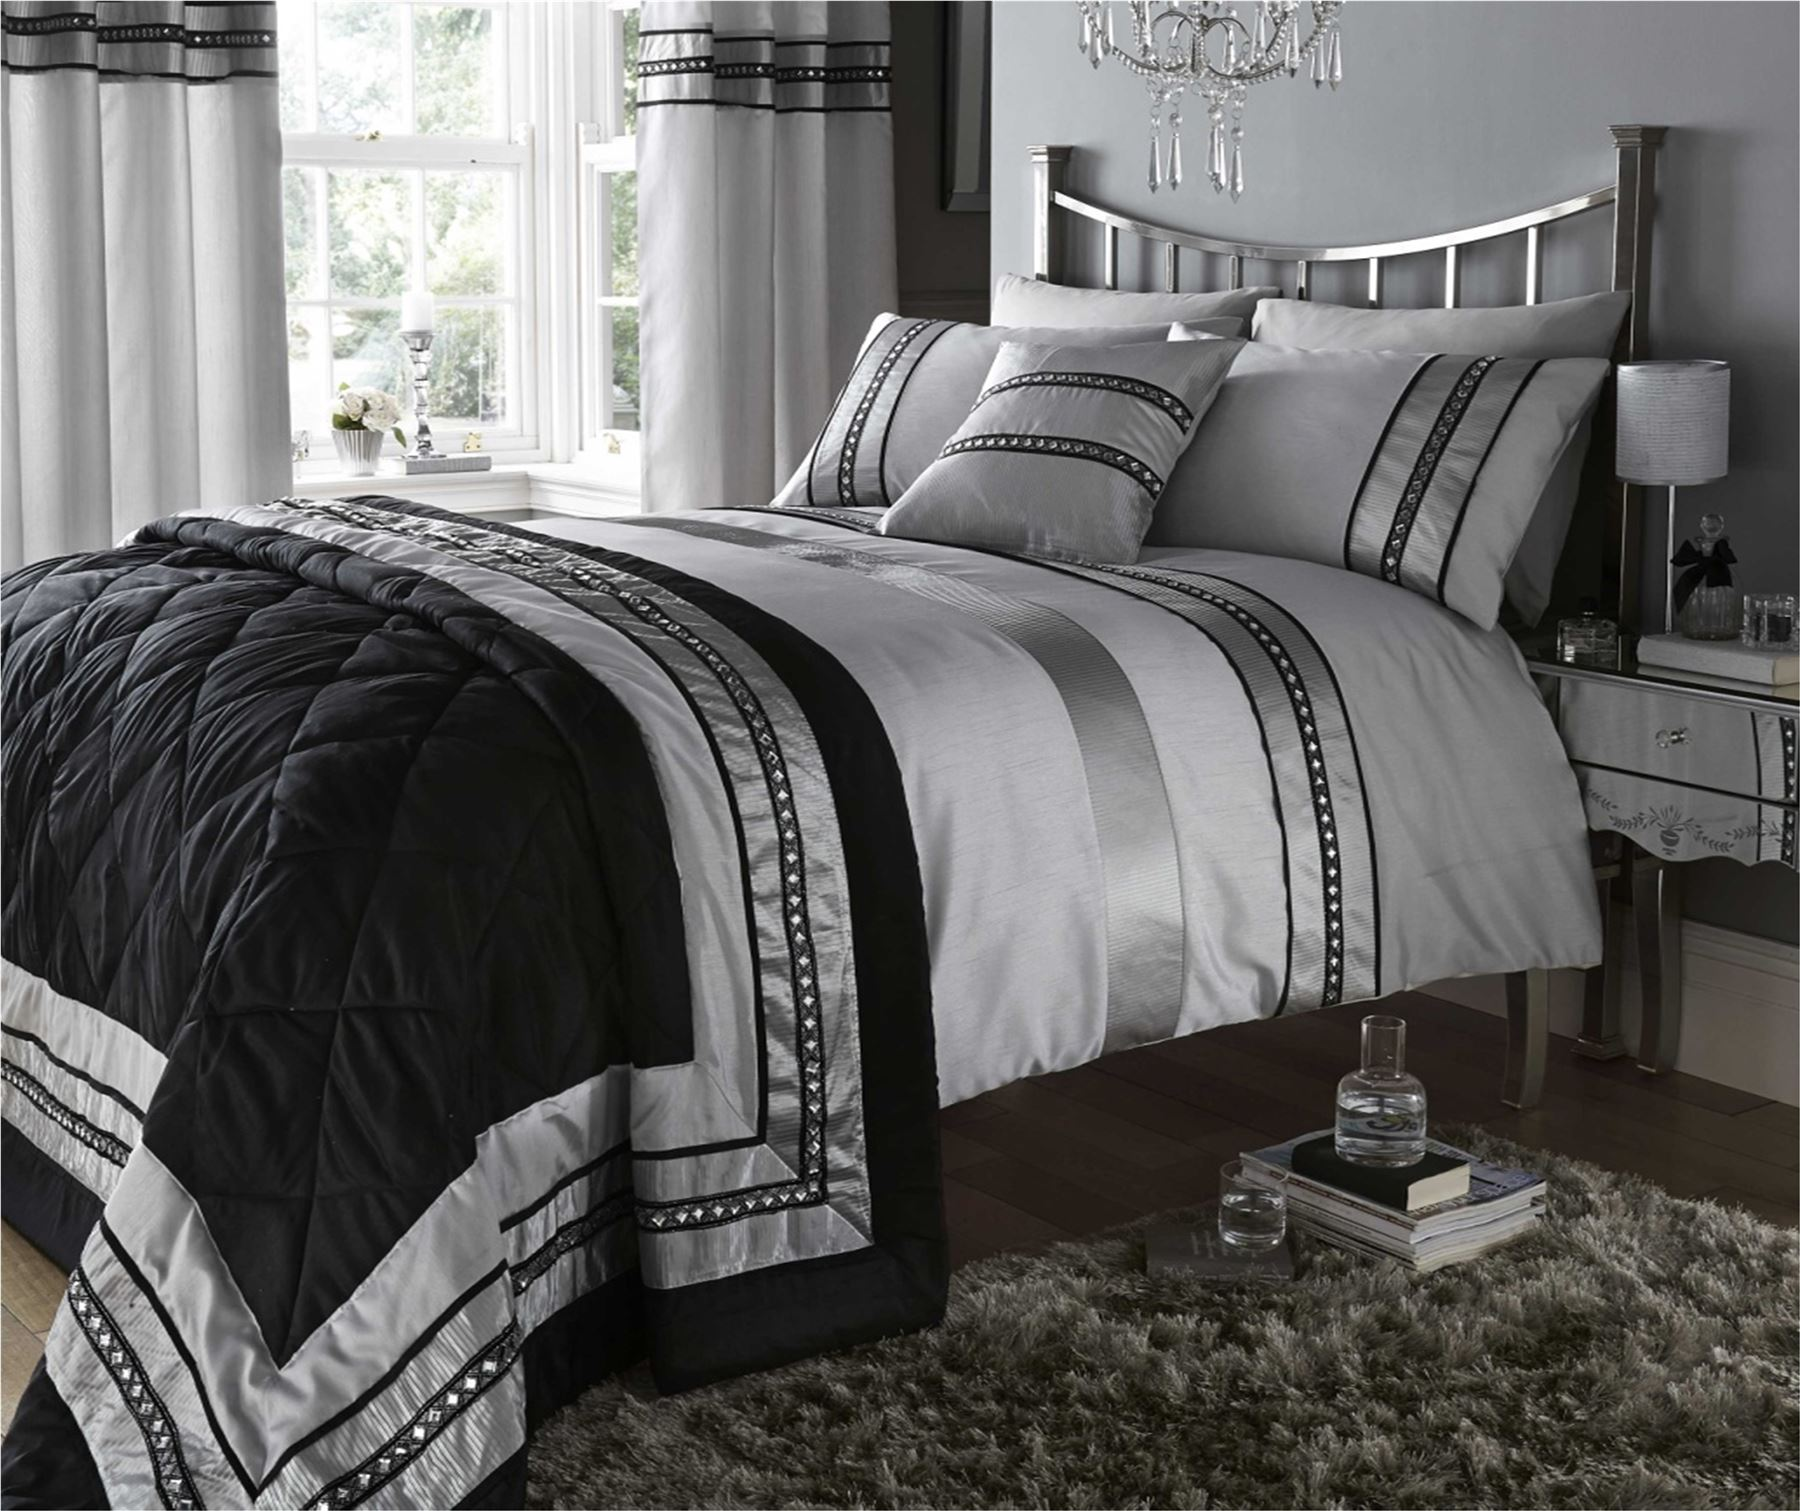 White and silver bedding